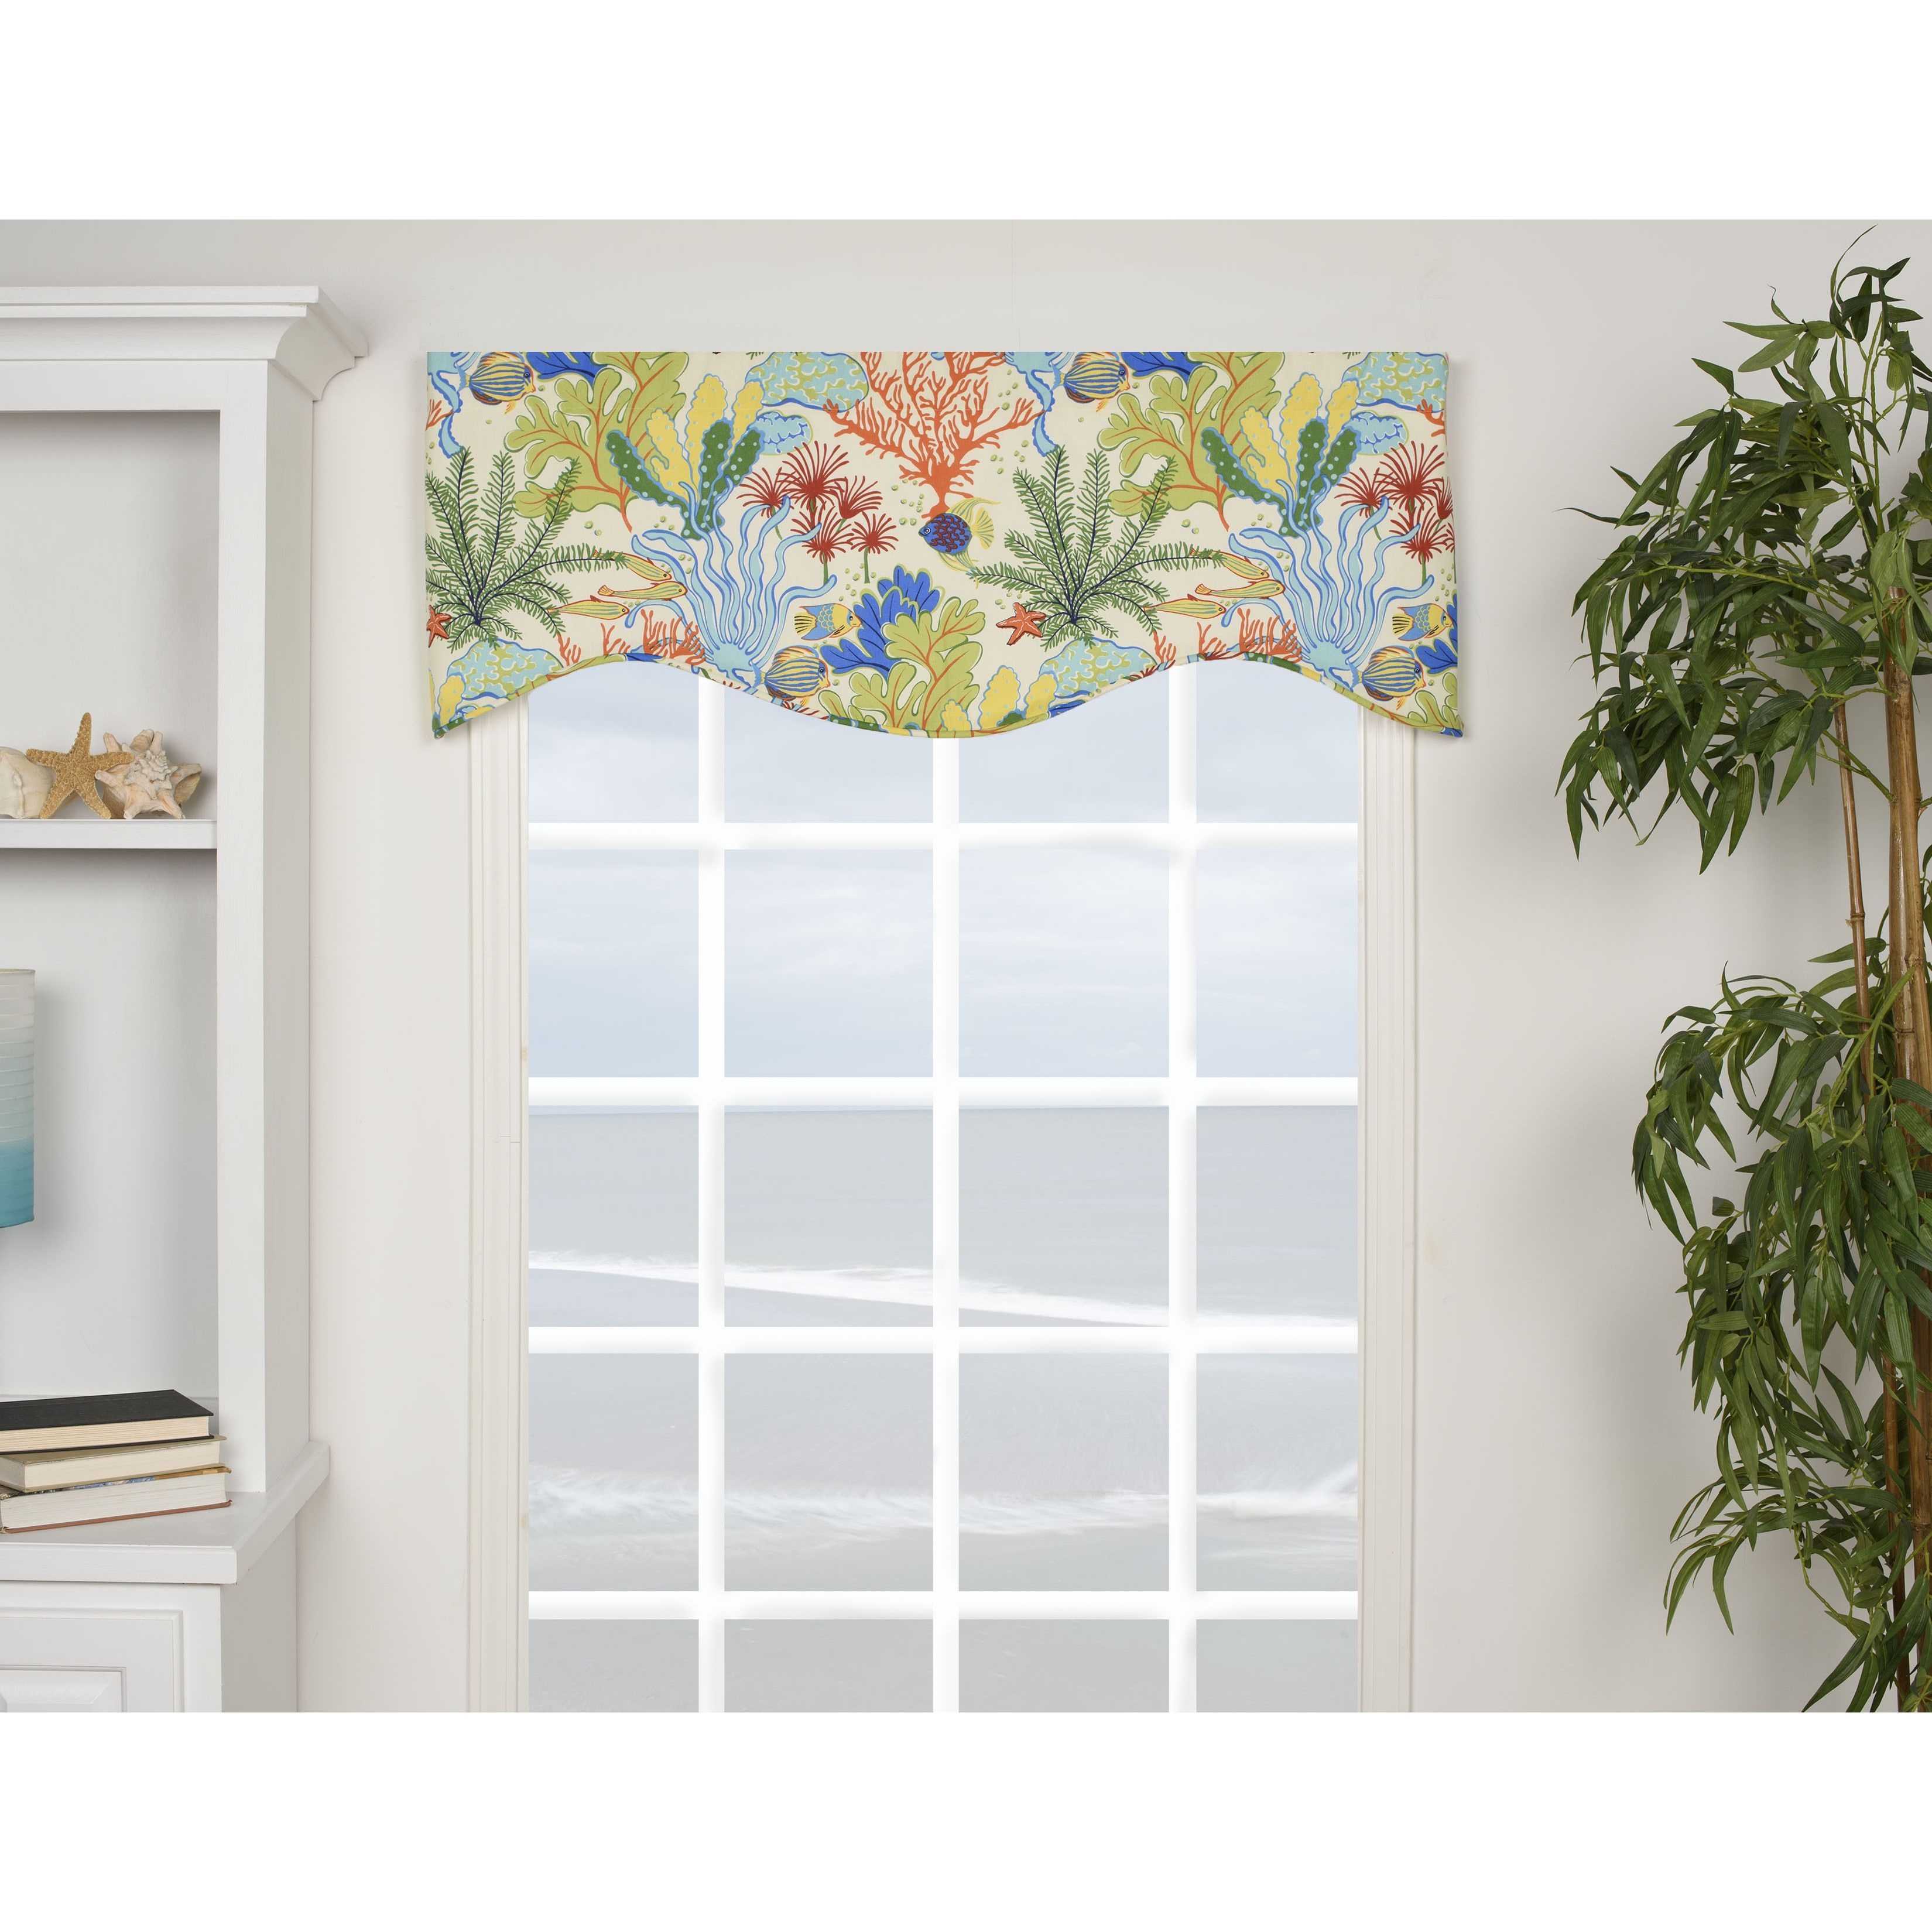 The Island Breeze Shaped Valance features a cotton construction with ...